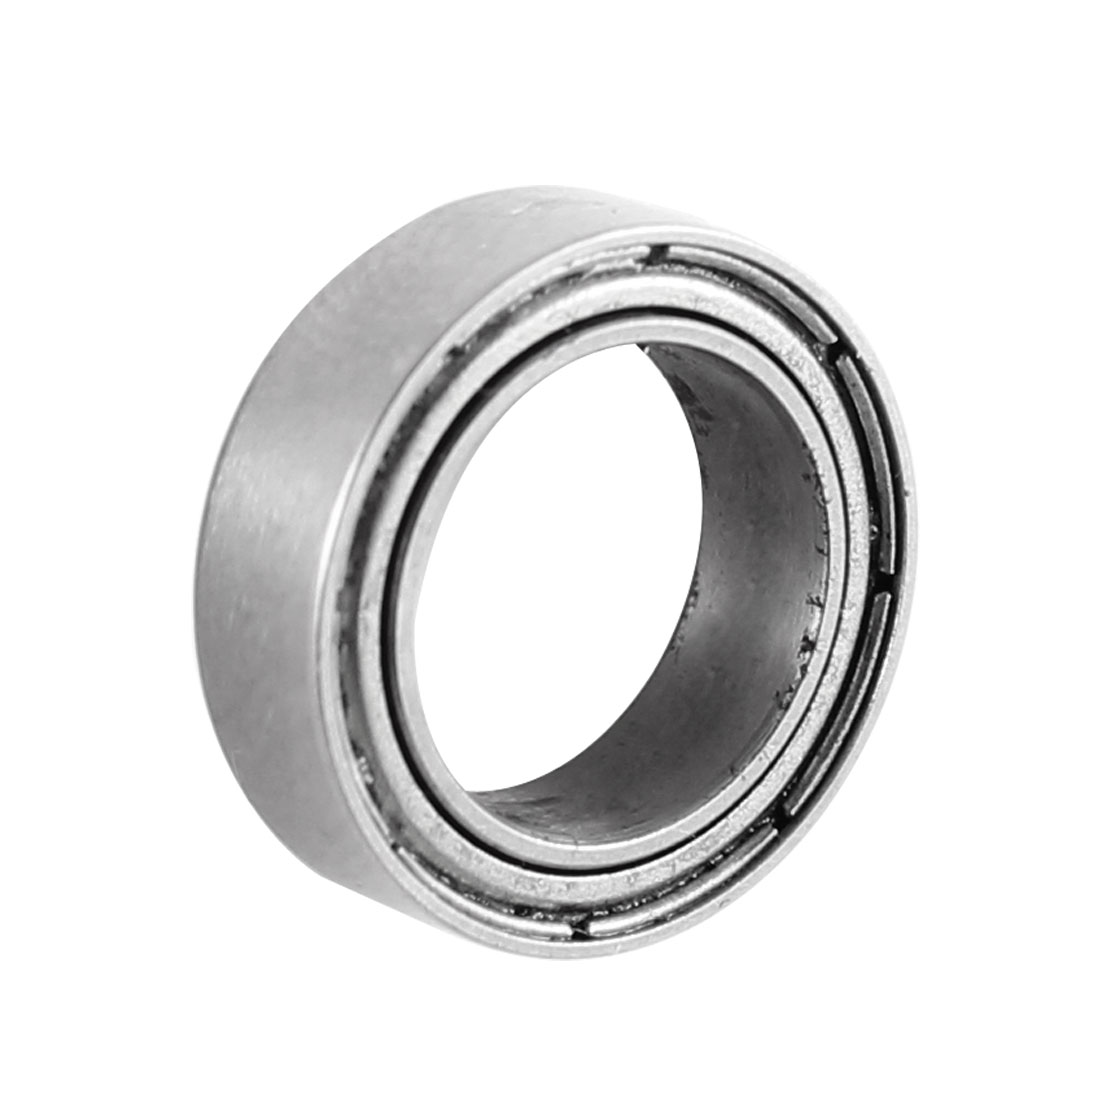 8mm x 12mm x 3.5mm Metal Sealed Deep Groove Radial Ball Bearing